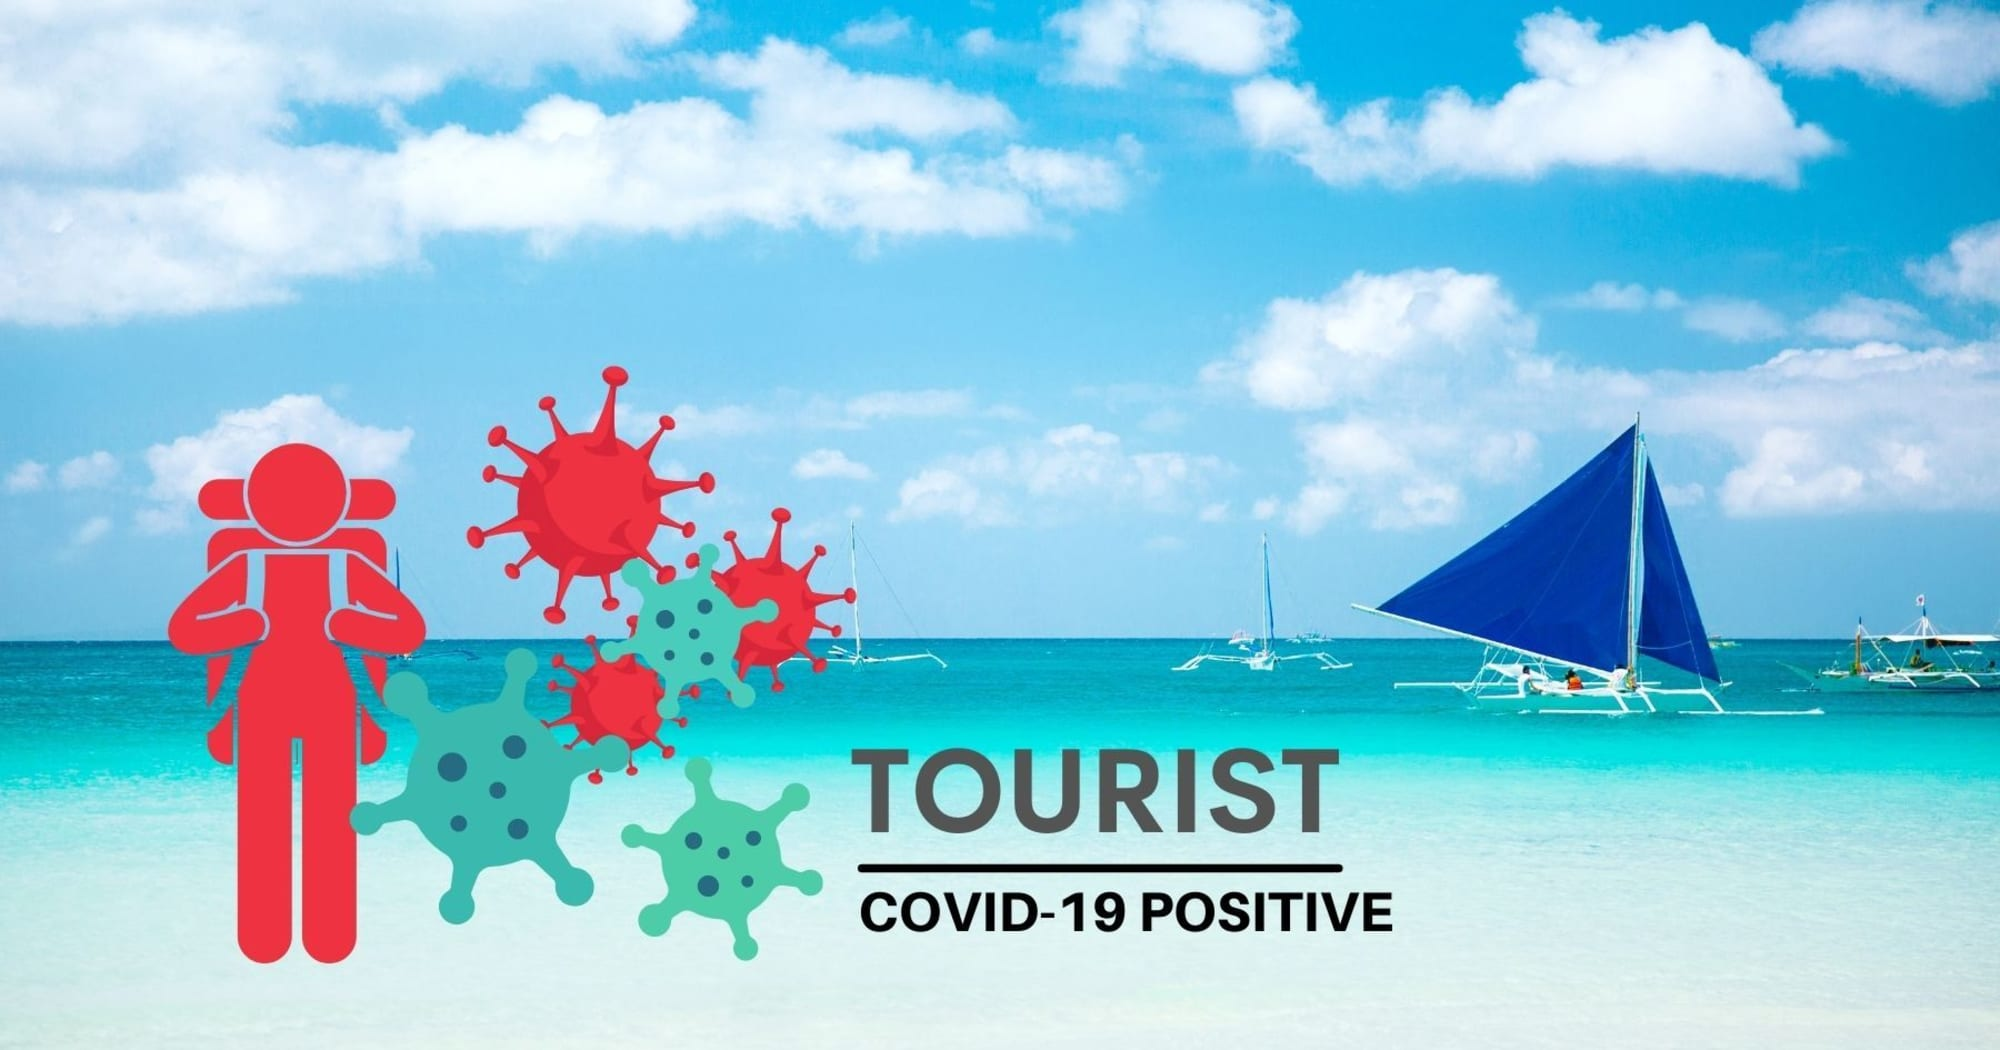 Tourist coming from Boracay, Came Back COVID-19 Positive